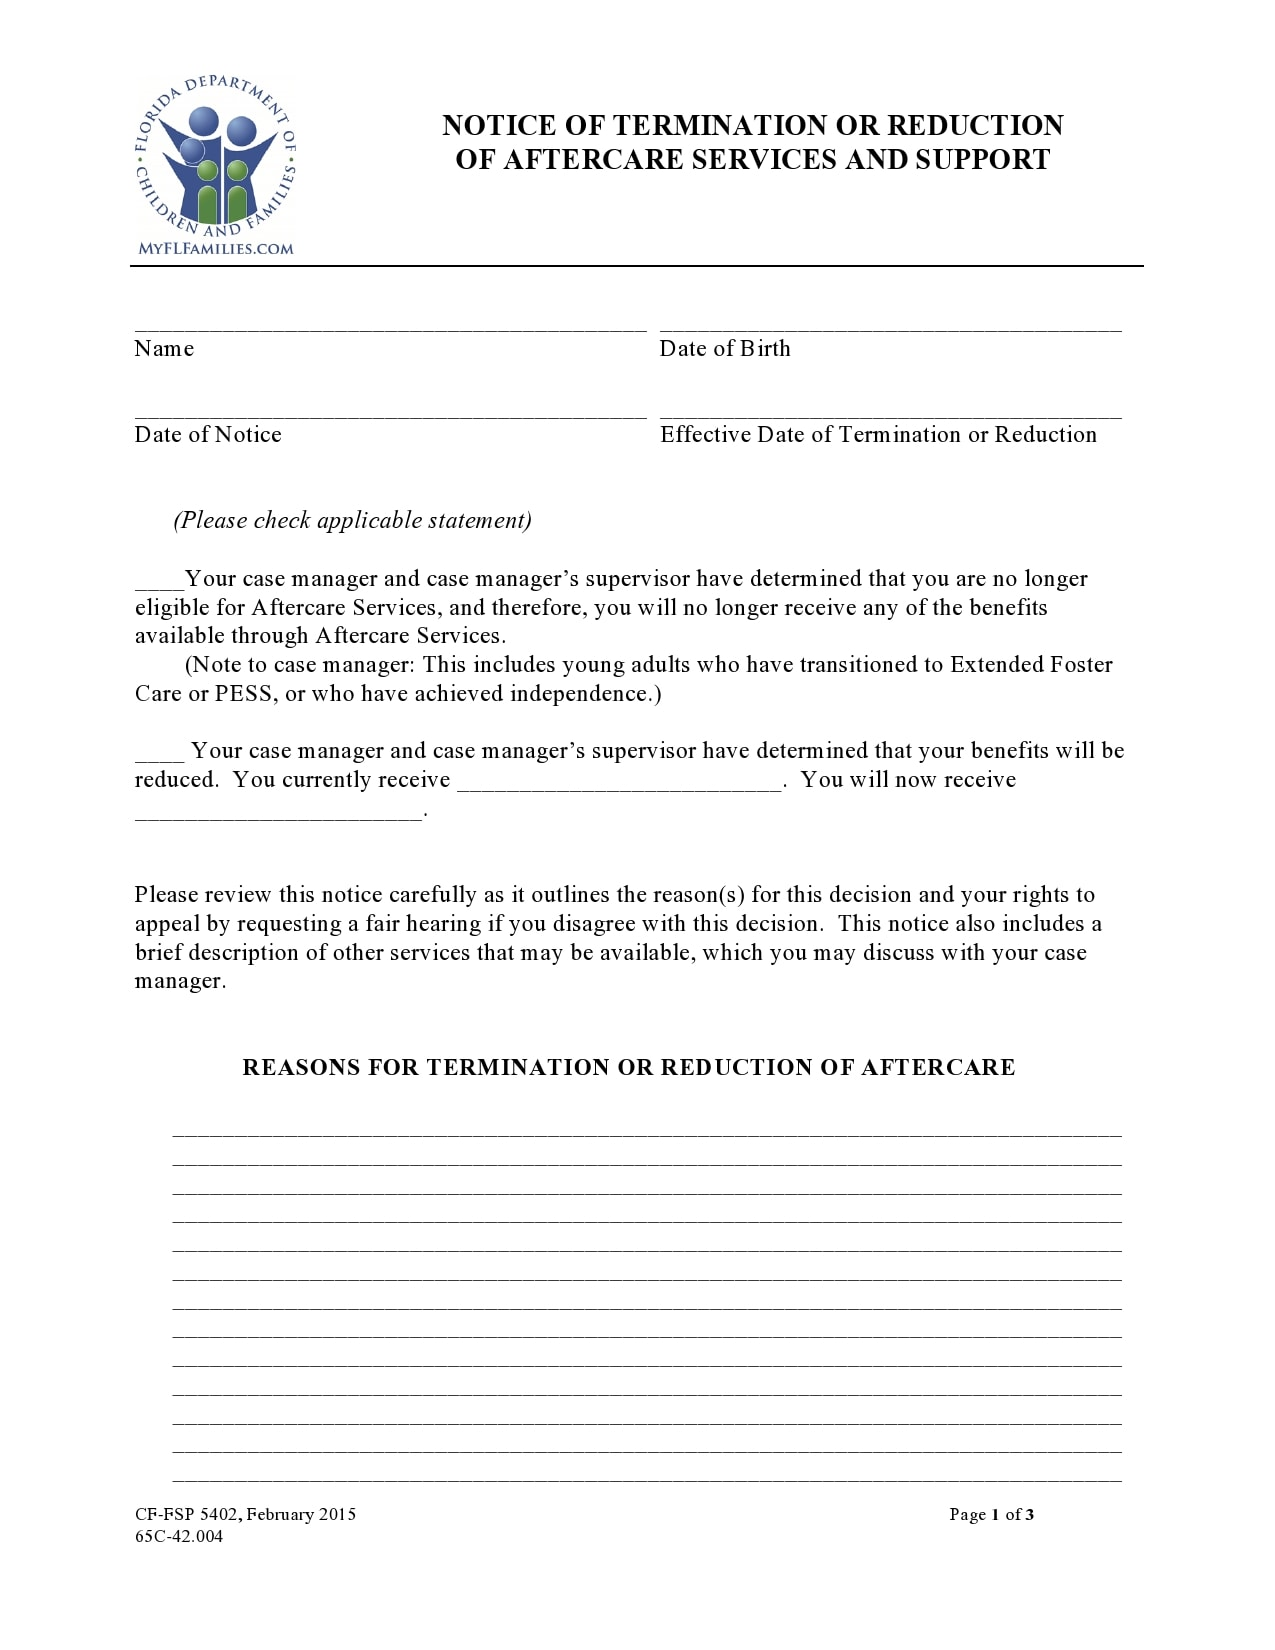 notice of termination 14